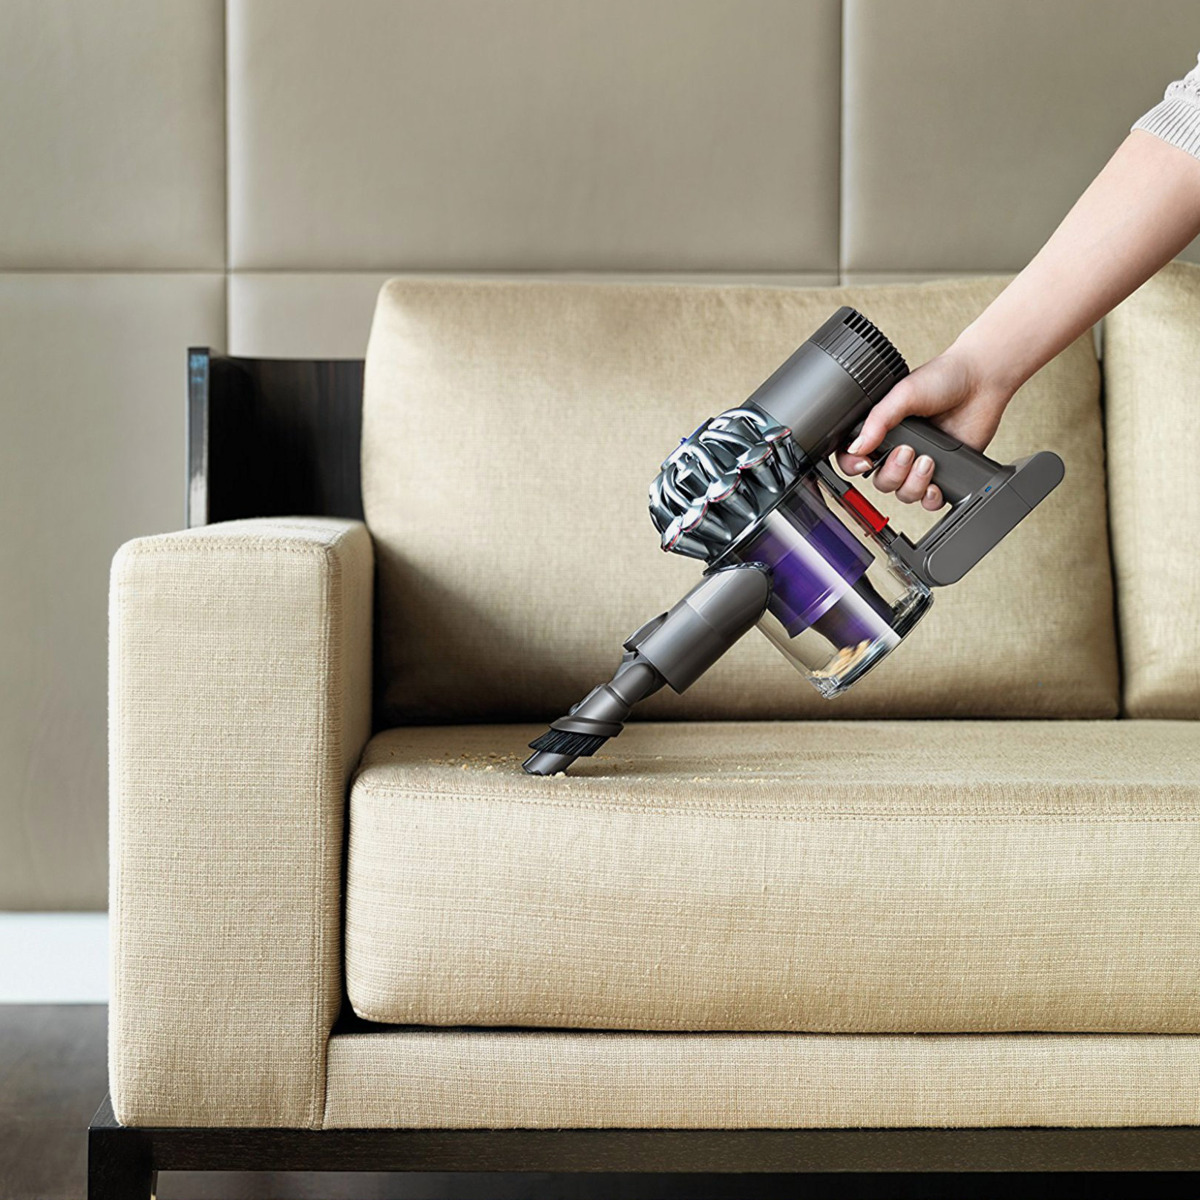 Sofa Vacuum Cleaner Brush 15 Best Handheld Vacuums 2019 Dyson Black Decker More